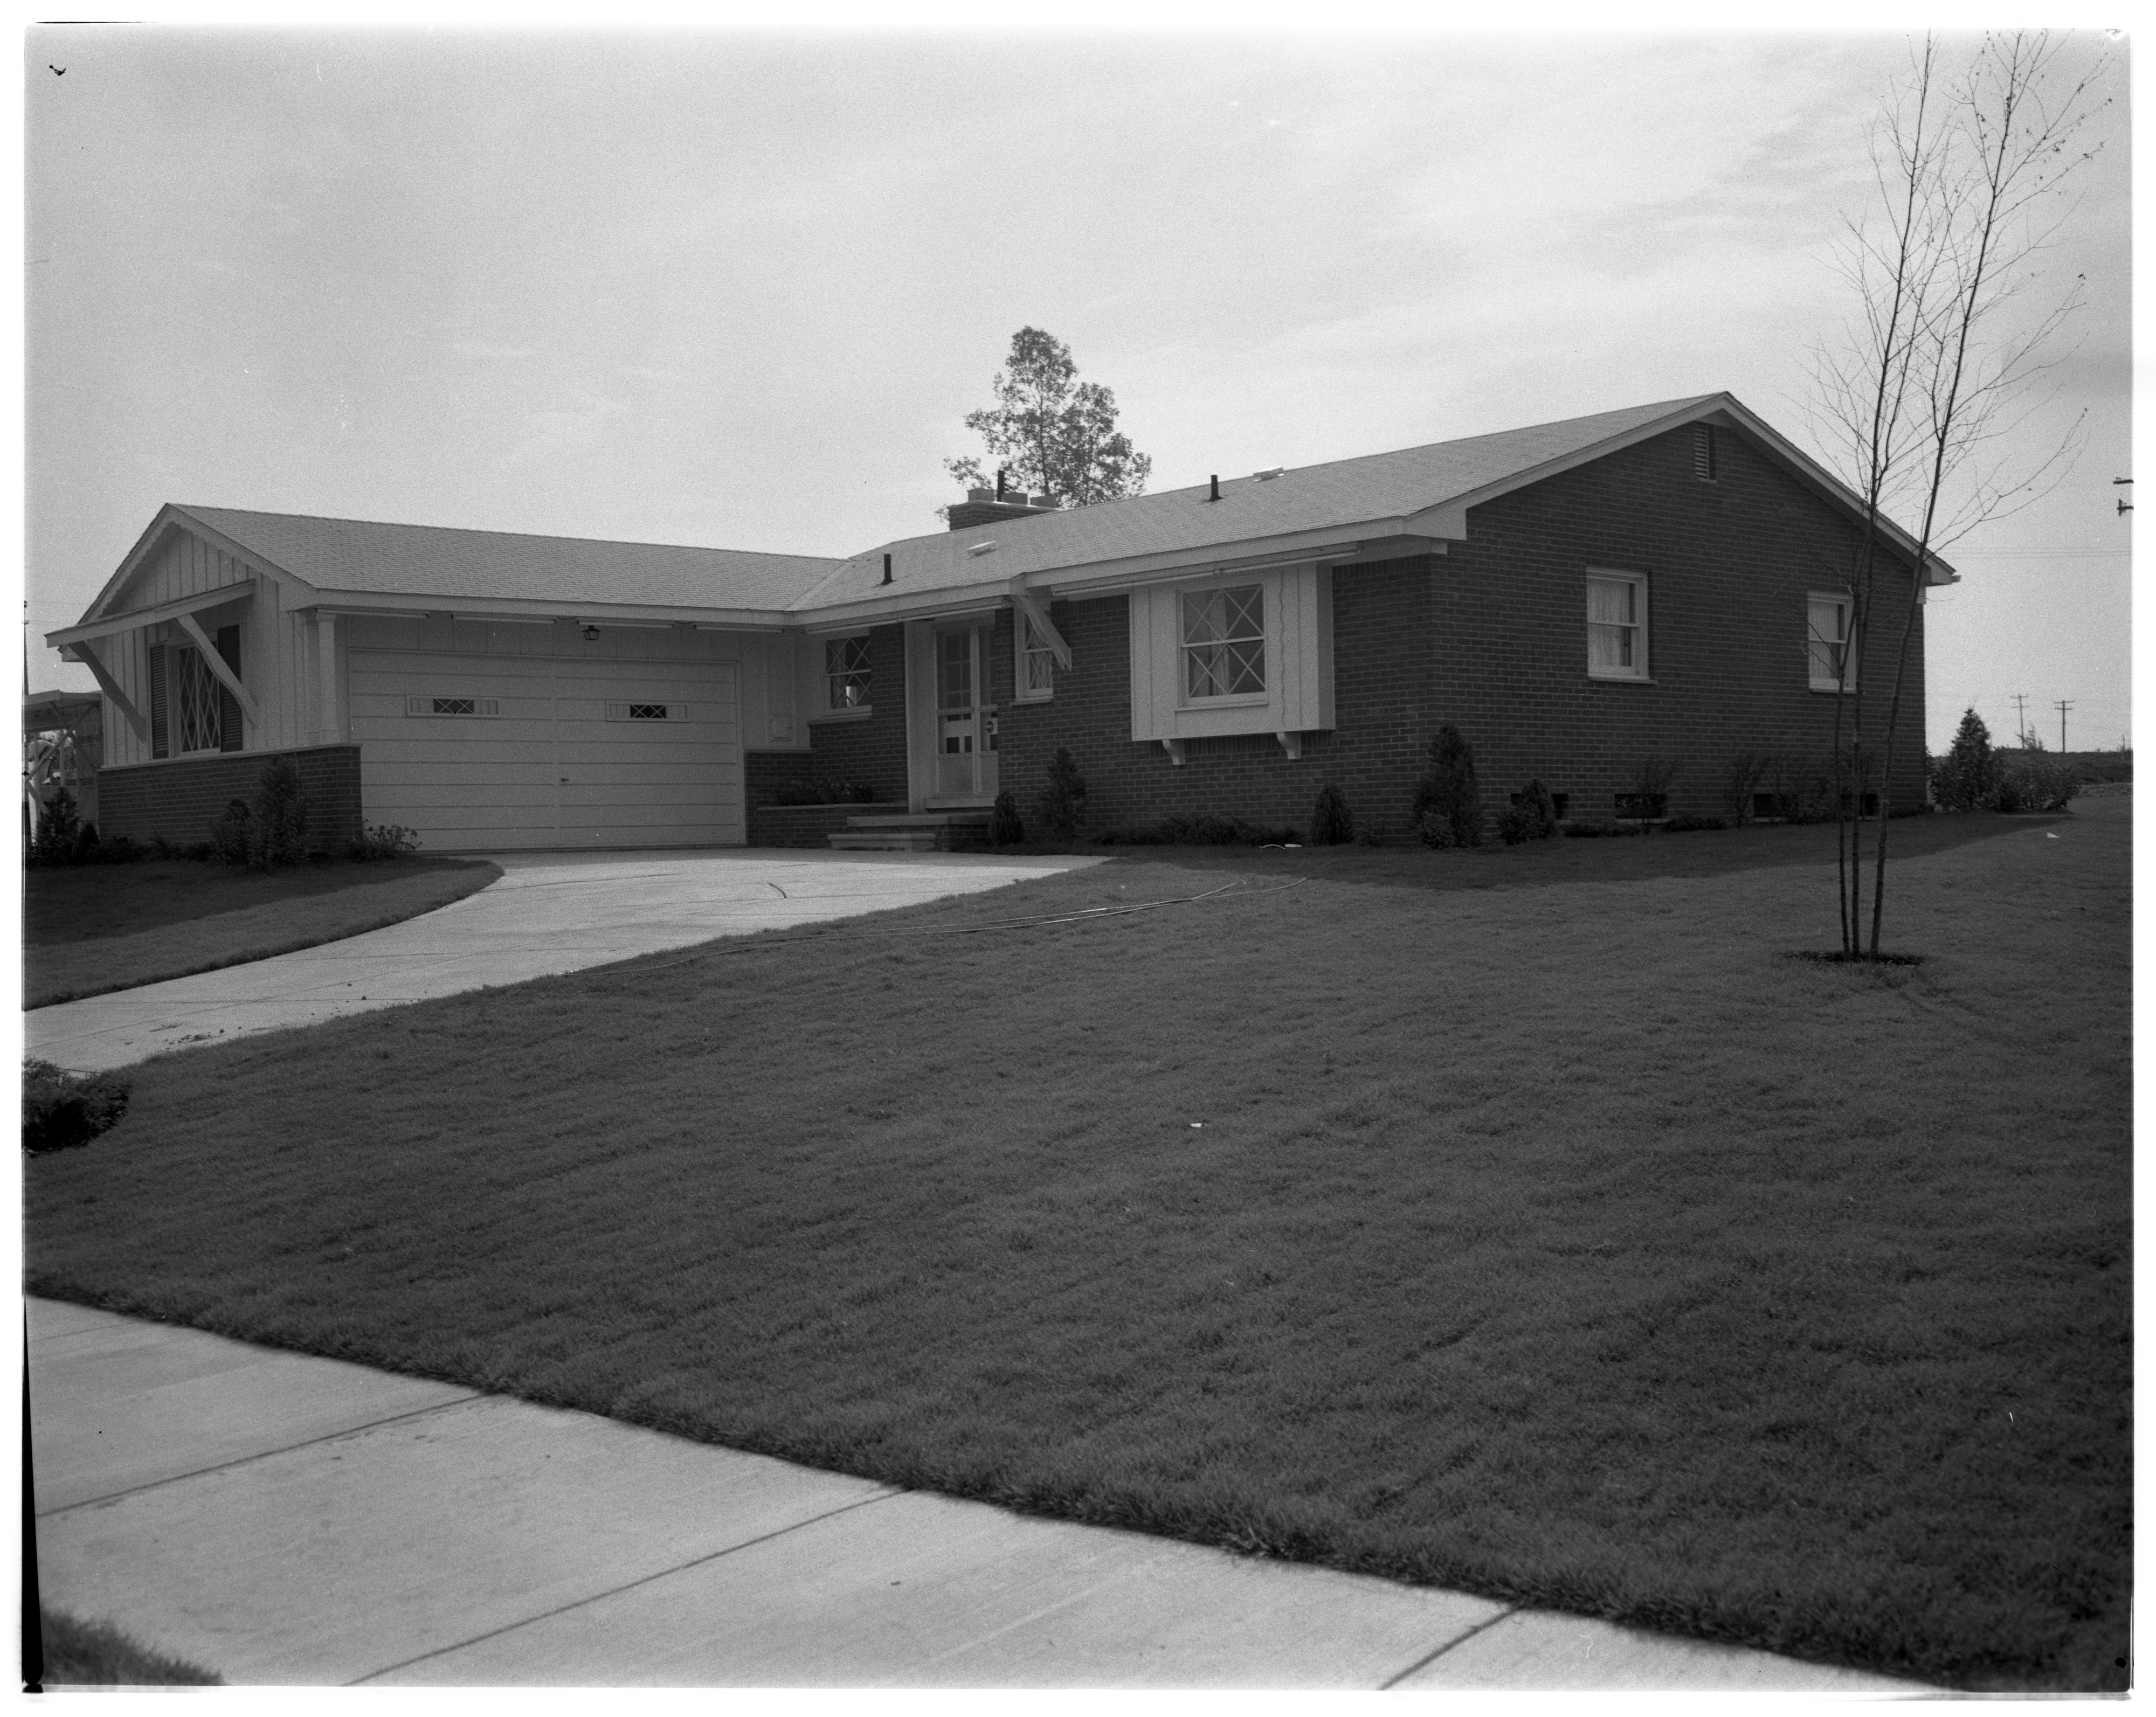 """The Richmond"" Model Home in Forestbrooke Subdivision, September 1960 image"